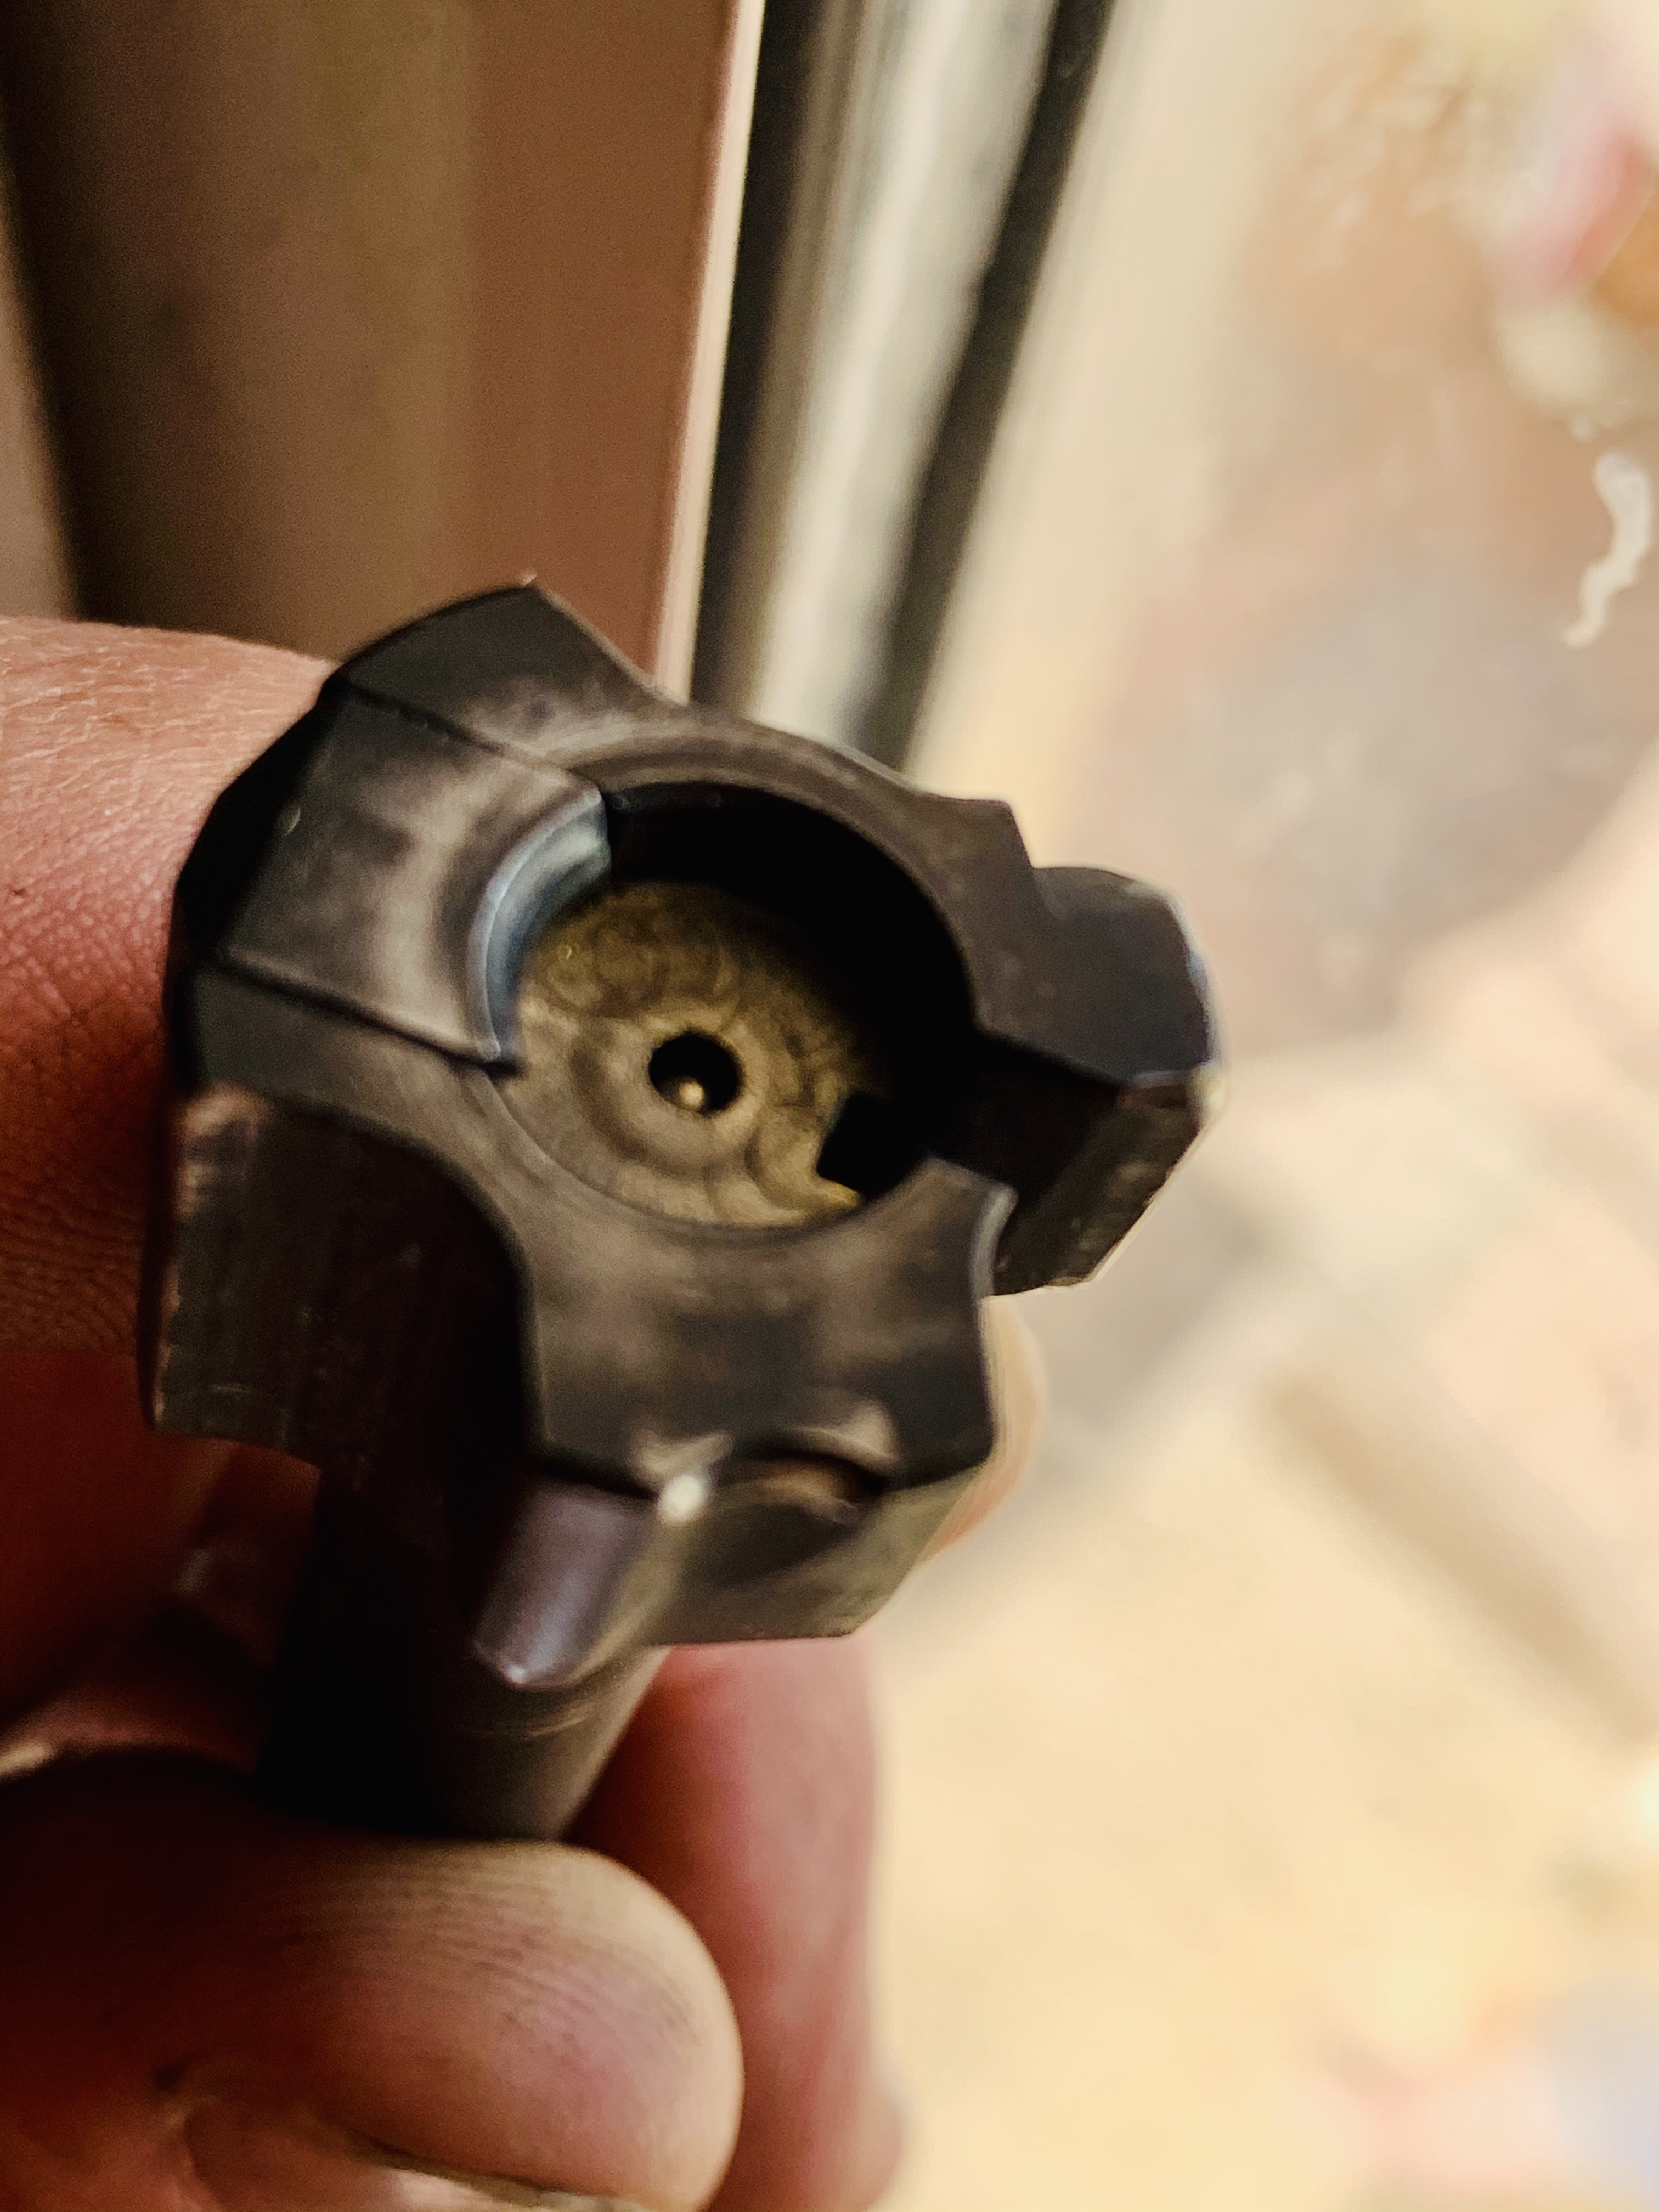 Thought I busted my first firing pin...but-722f59f0-0454-4988-9dd1-7b806a35adc8_1587942460407.jpeg